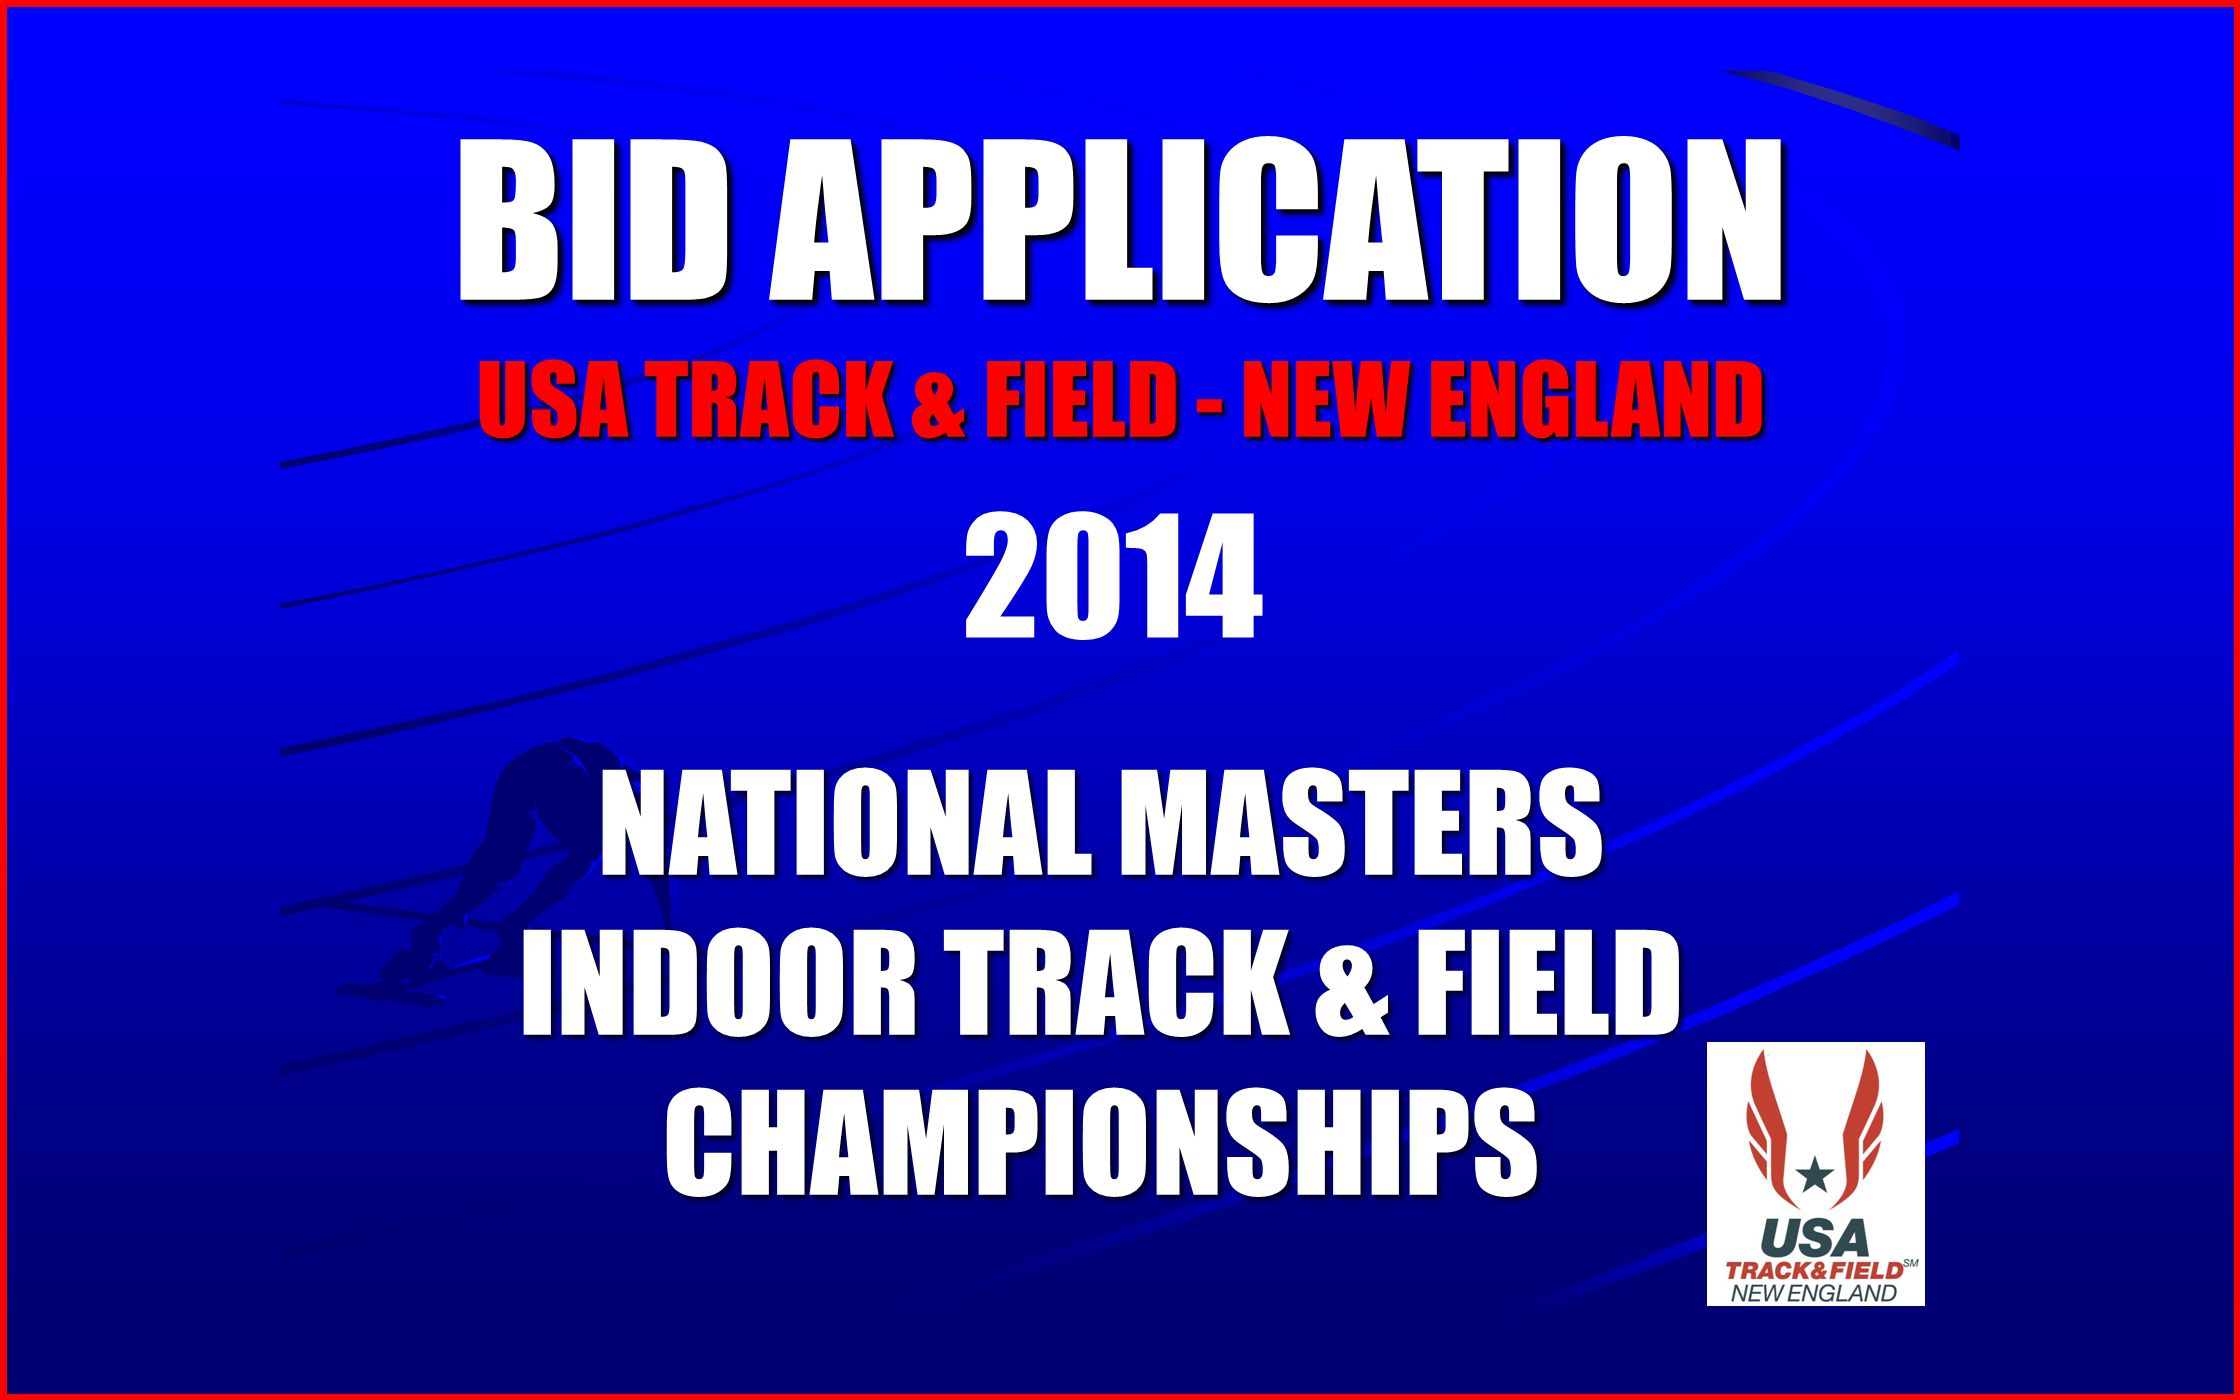 2 BID APPLICATION USA TRACK & FIELD - NEW ENGLAND BID APPLICATION USA TRACK & FIELD - NEW ENGLAND NATIONAL MASTERS INDOOR TRACK & FIELD CHAMPIONSHIPS